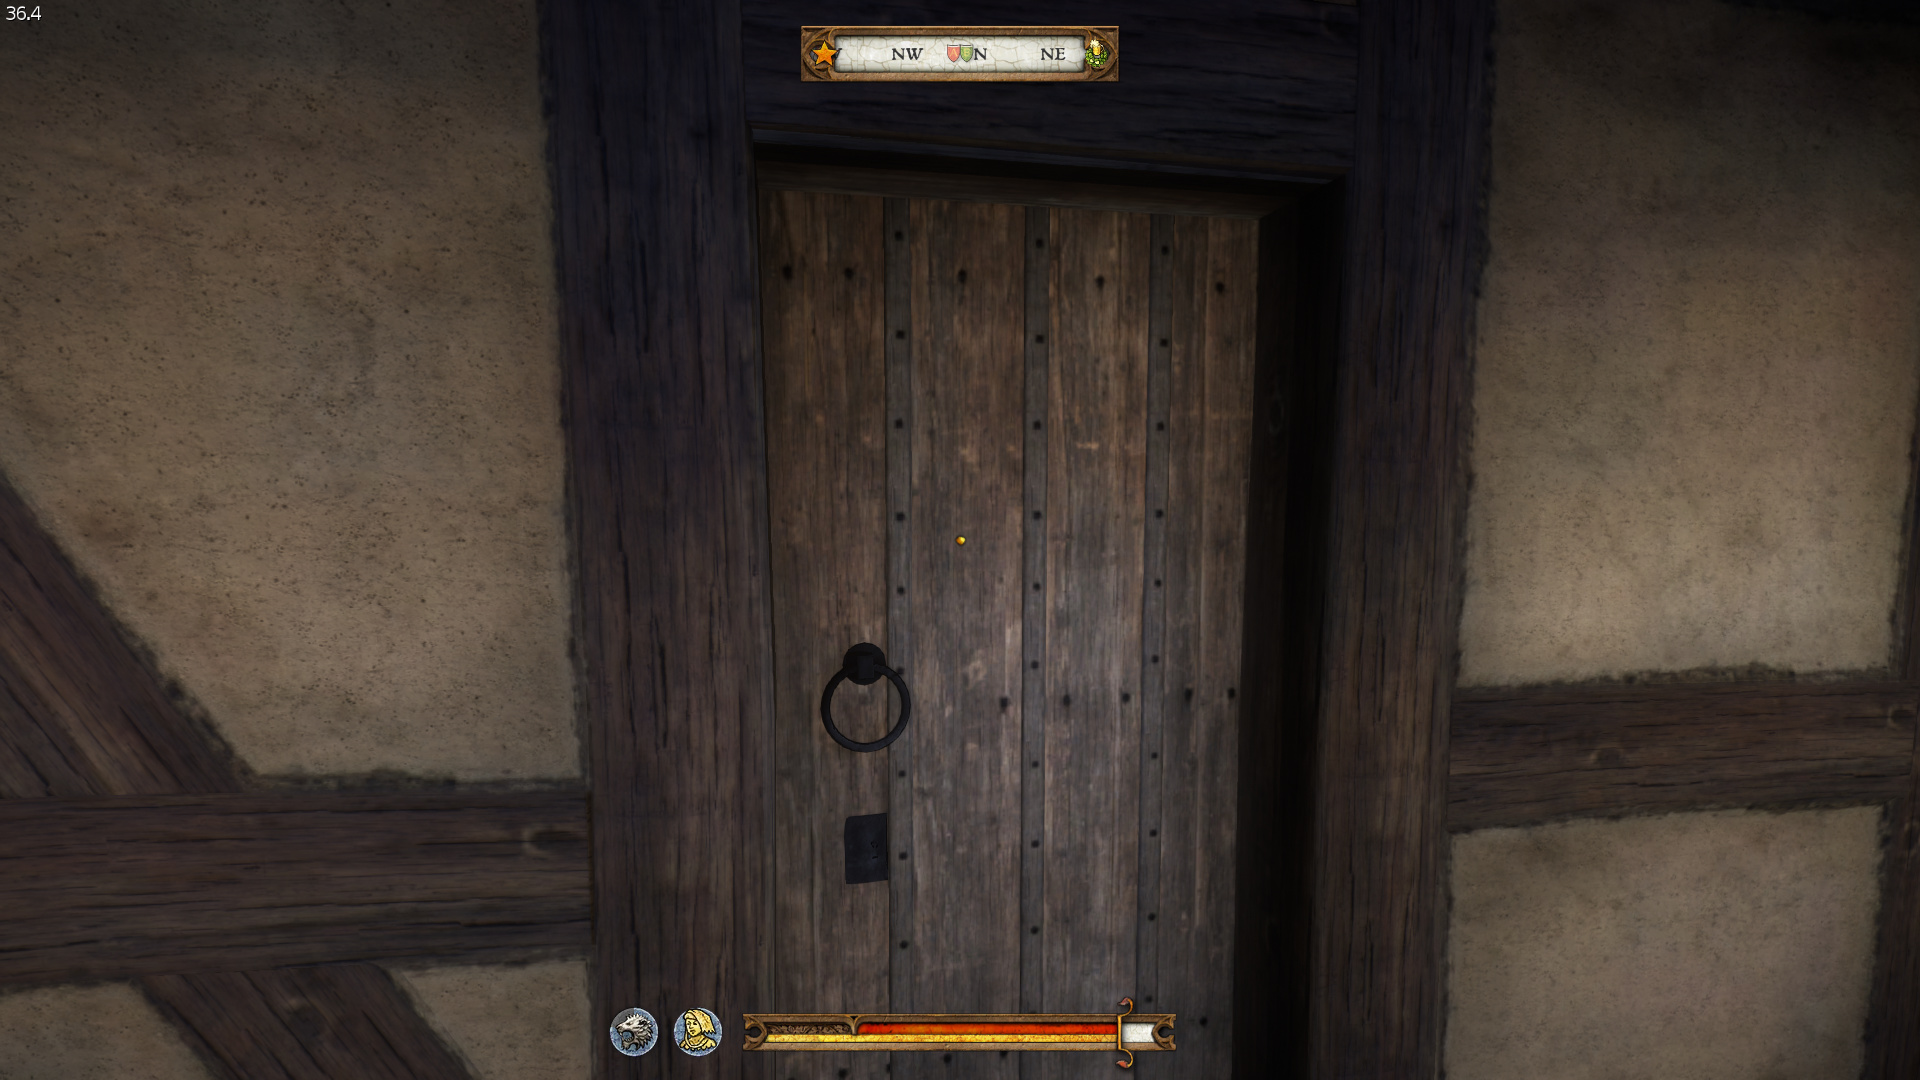 I was making may way back to my lodgings outside the upper gate of Ratay and I found the door closed. I canu0027t interact with it in any way ... & Inn Doors - STUCK Closed when Buying Longer Term - Bugs - Kingdom ...